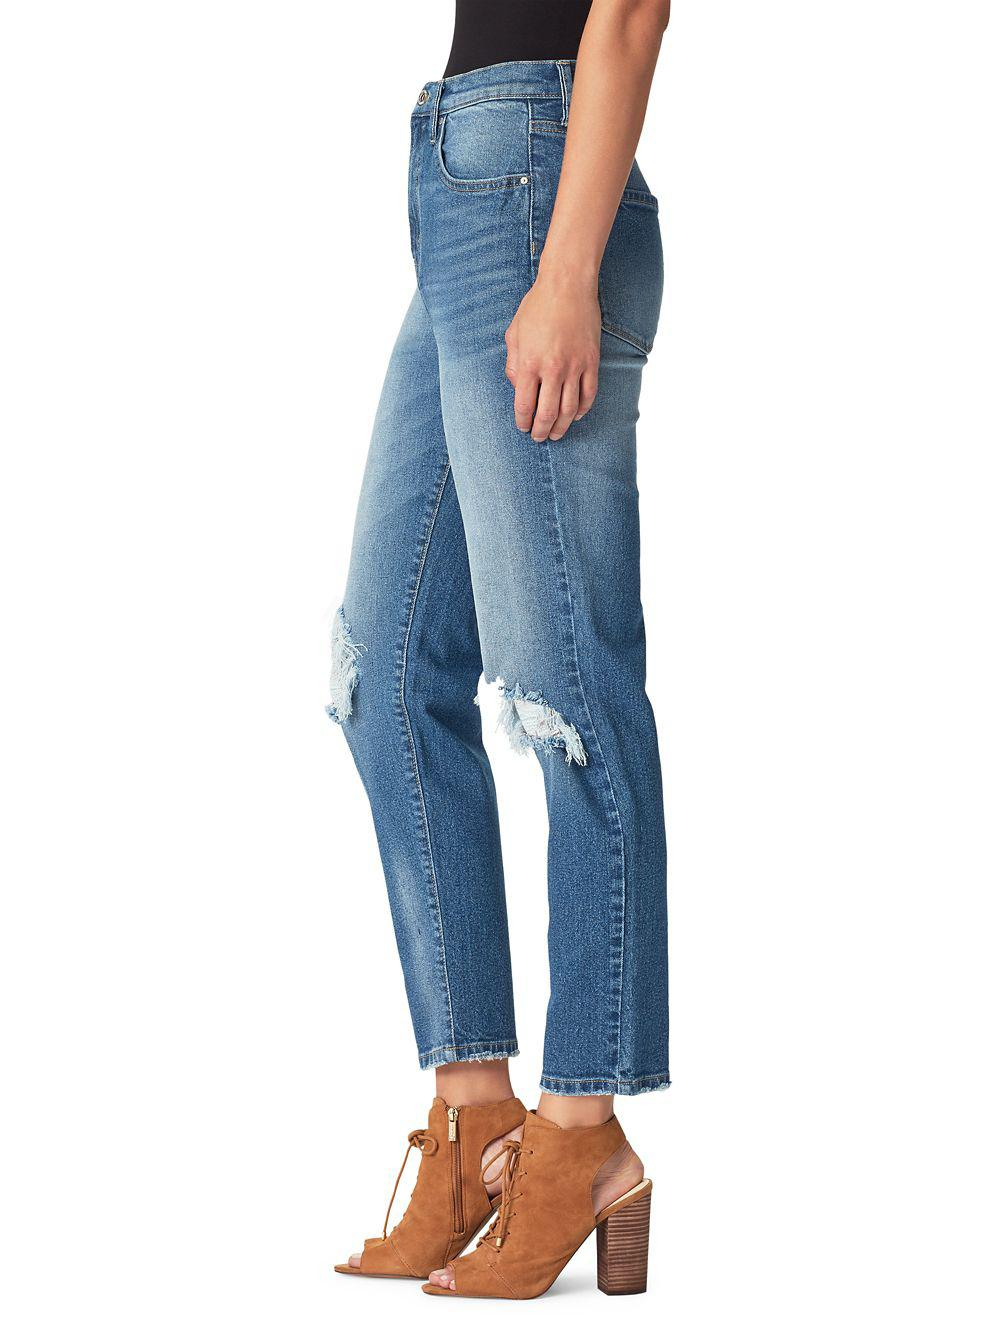 b181d4457a5 Jessica Simpson - Blue Infinite High Rise Straight Jeans - Lyst. View  fullscreen